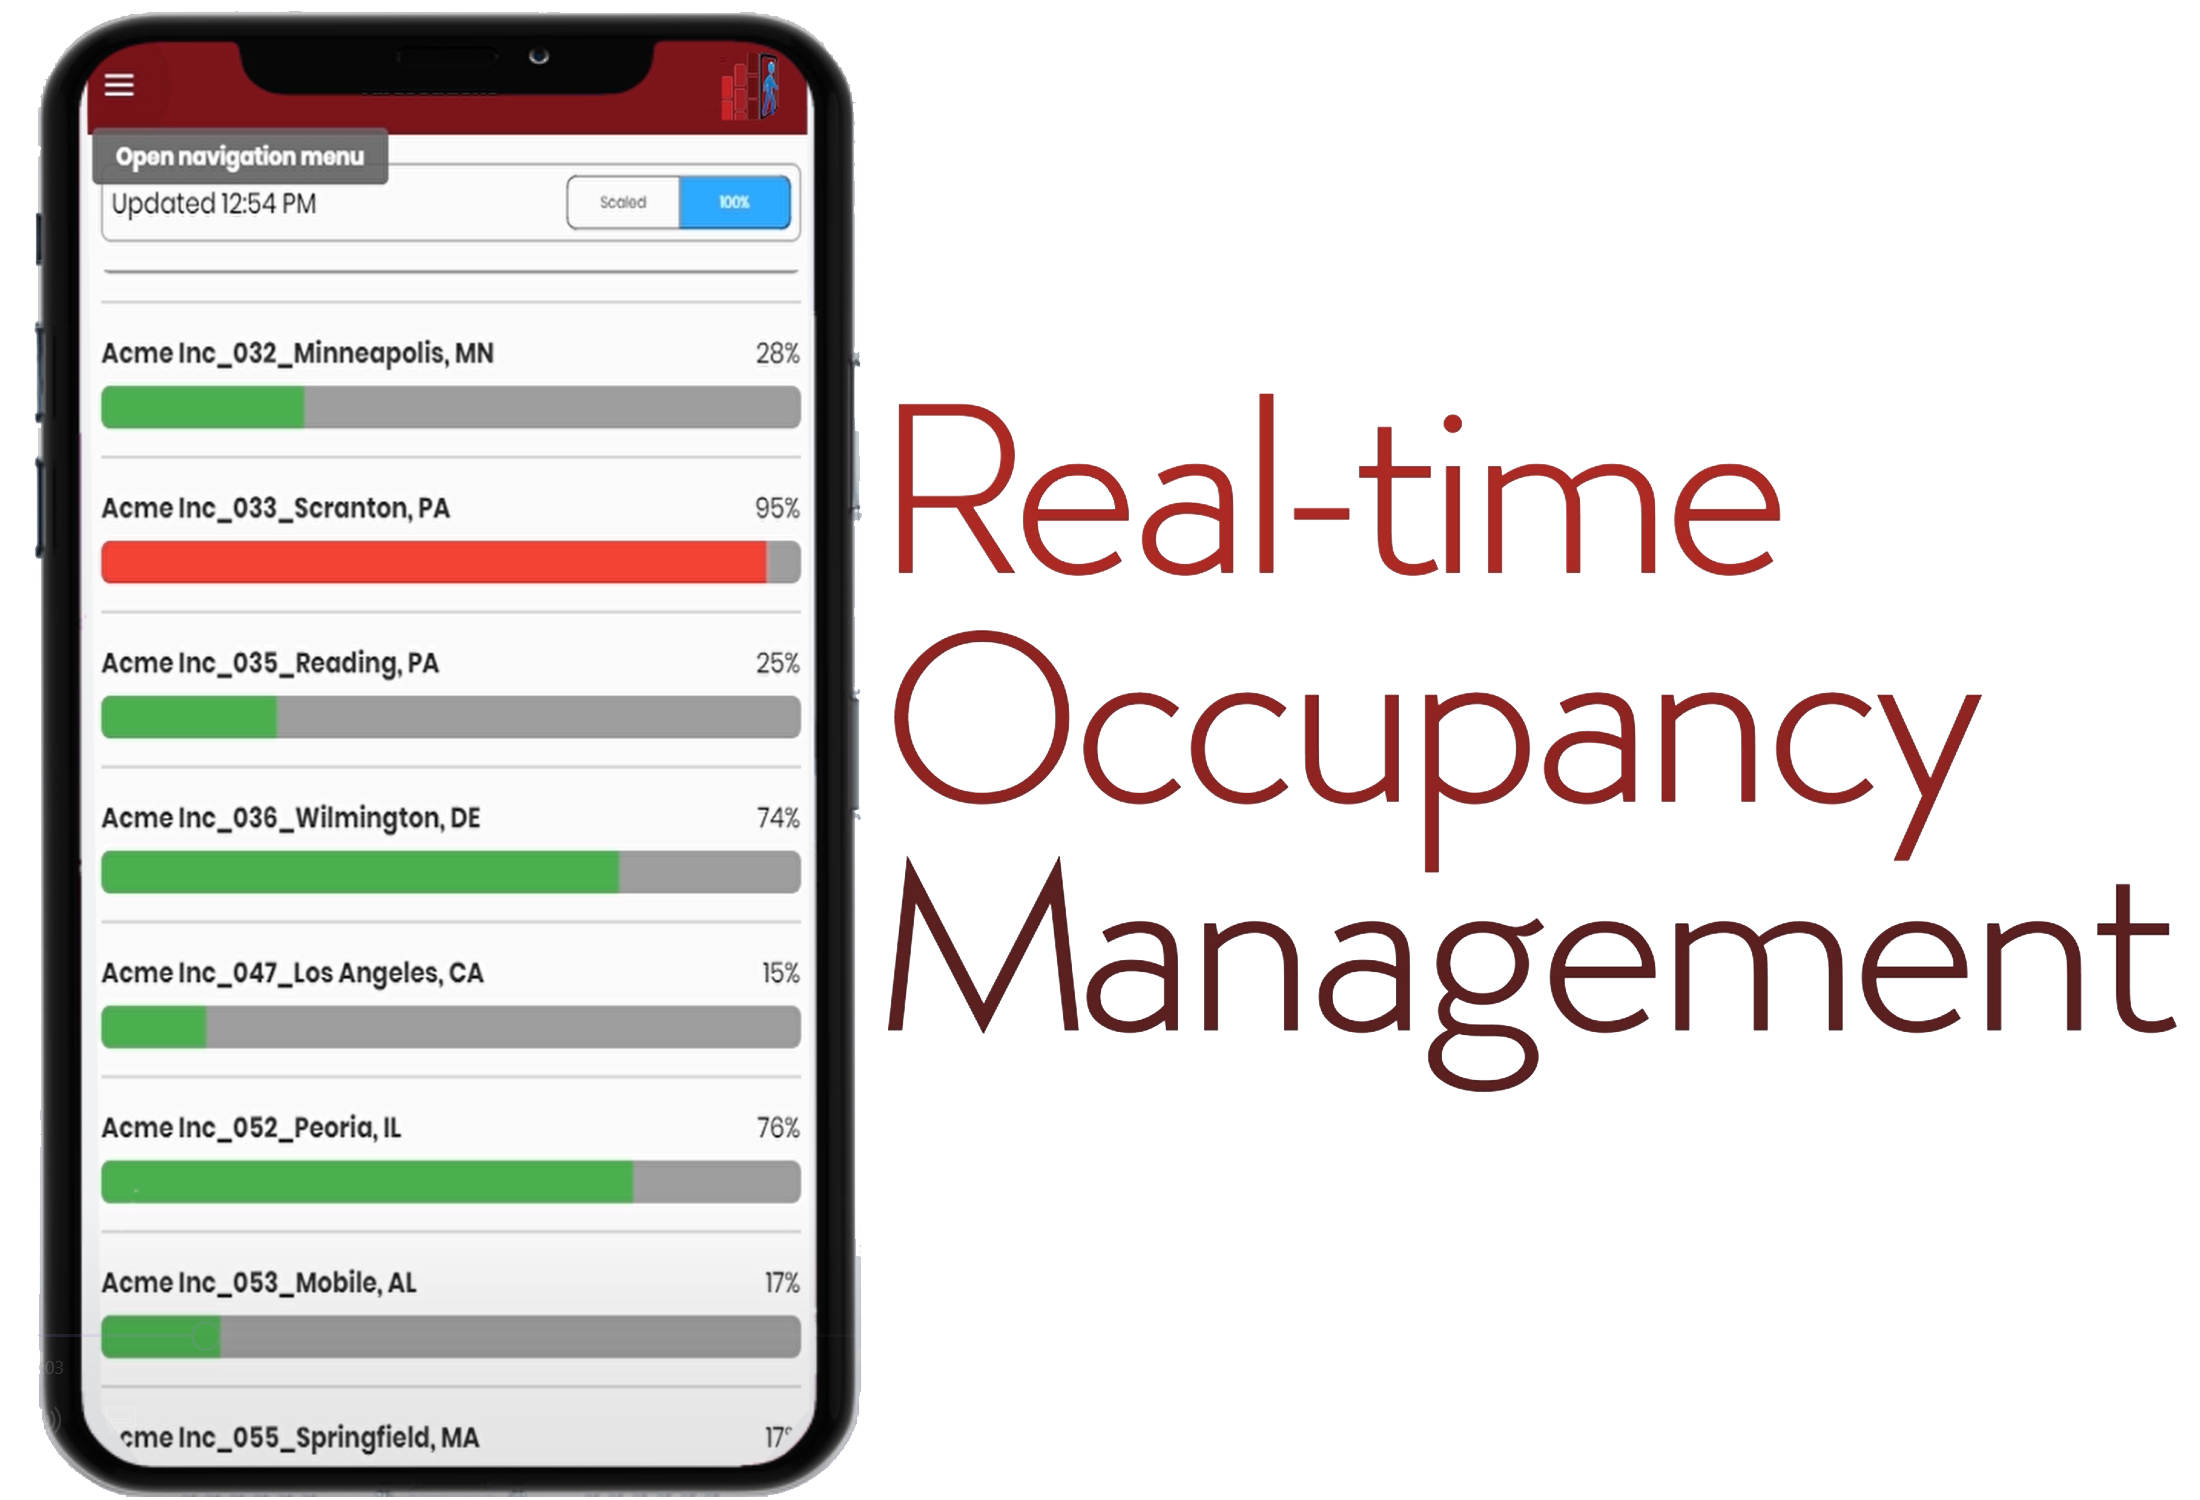 Real time occupancy management on phone graphic